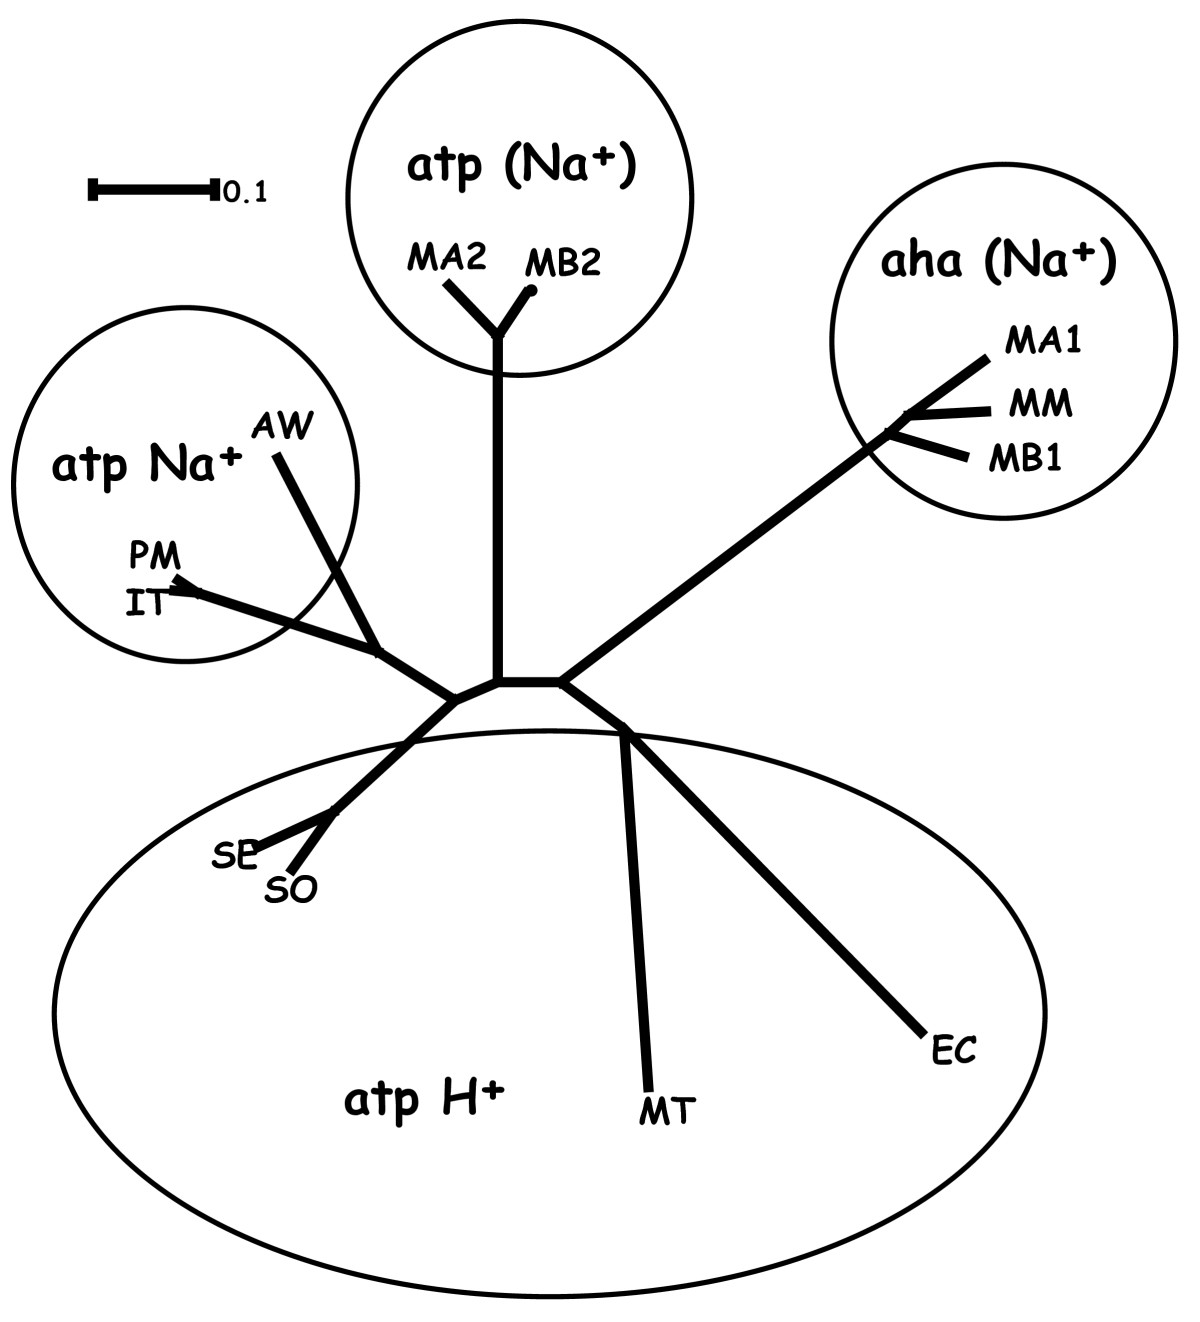 http://static-content.springer.com/image/art%3A10.1186%2F1471-2180-10-62/MediaObjects/12866_2009_Article_1018_Fig9_HTML.jpg